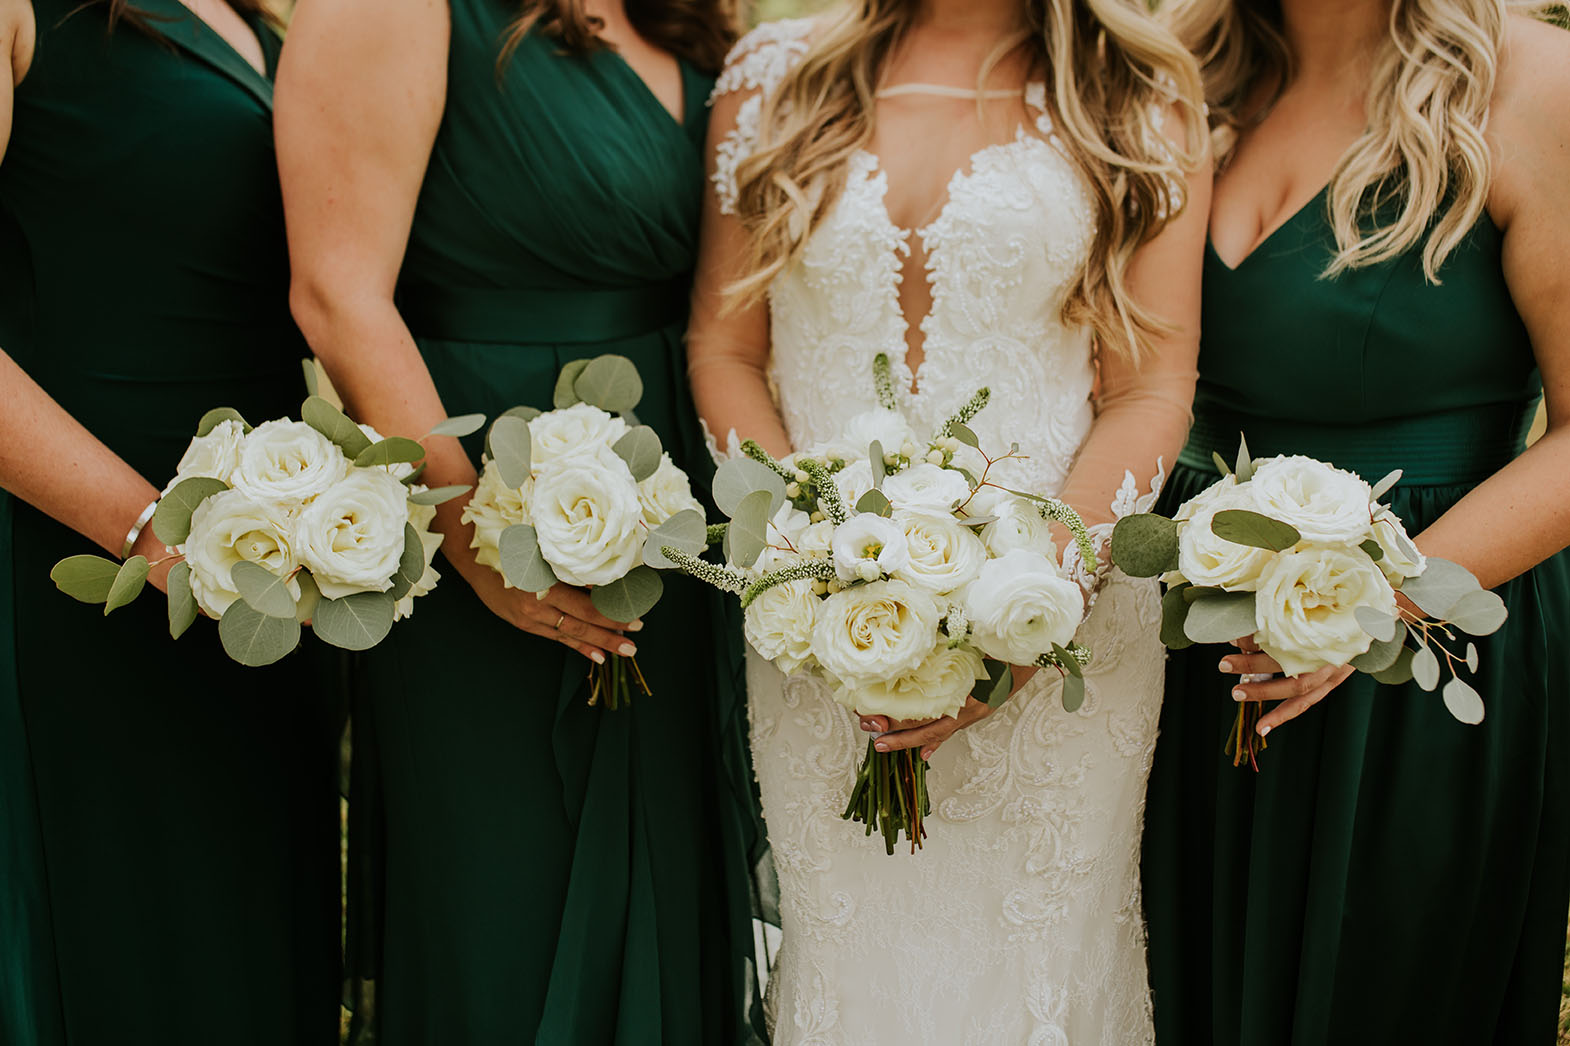 Bride and Bridesmaids Holding Wedding Bouquets